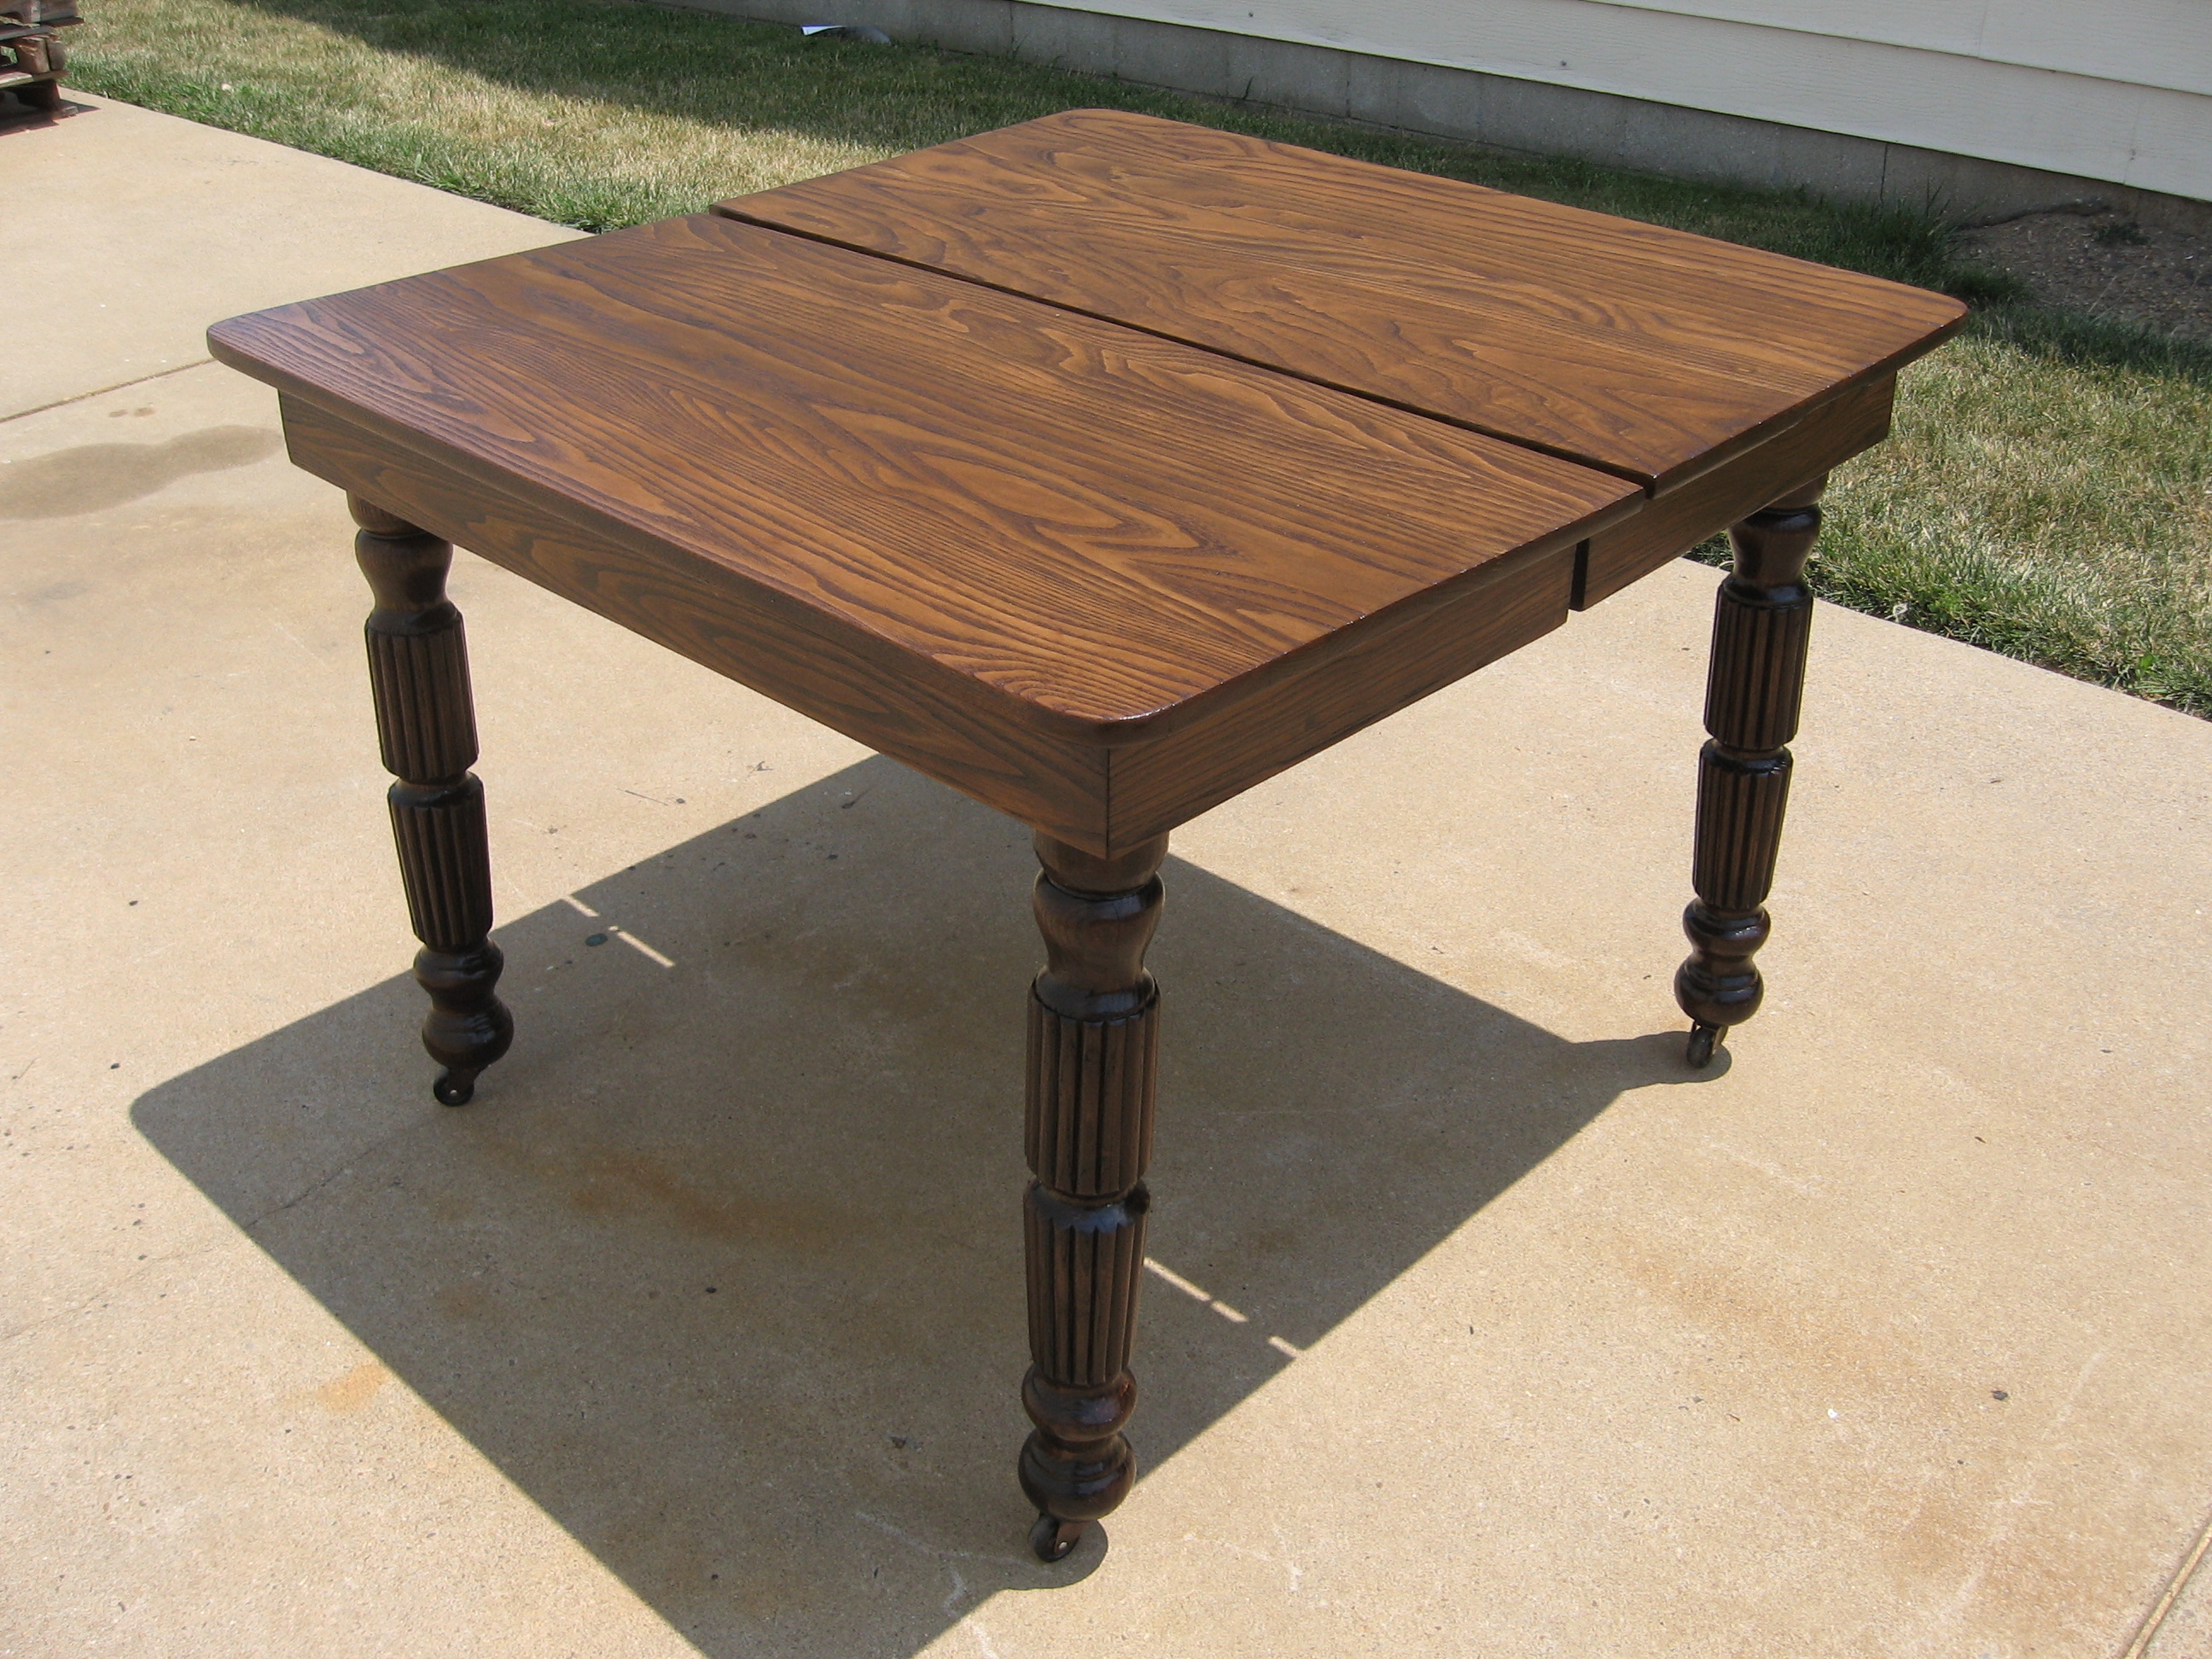 Refinished Oak Dining Table